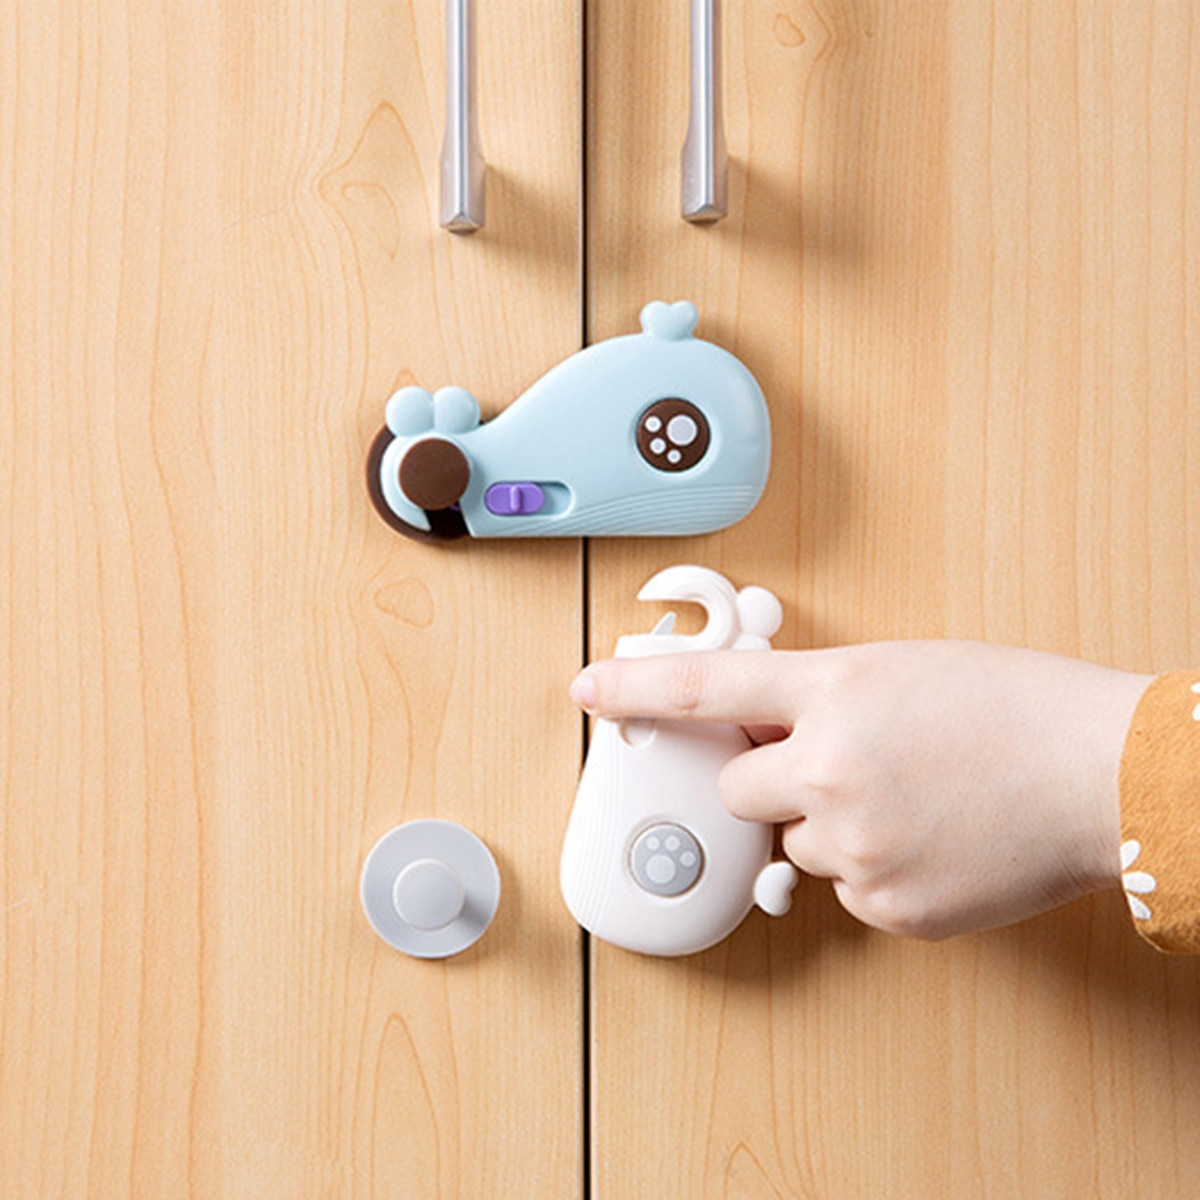 4pcs Baby Safety Cabinet Lock Door Lever Lock Safety Child Proof Doors Proofing Refrigerator Cabinet Locks with Self Adhesive